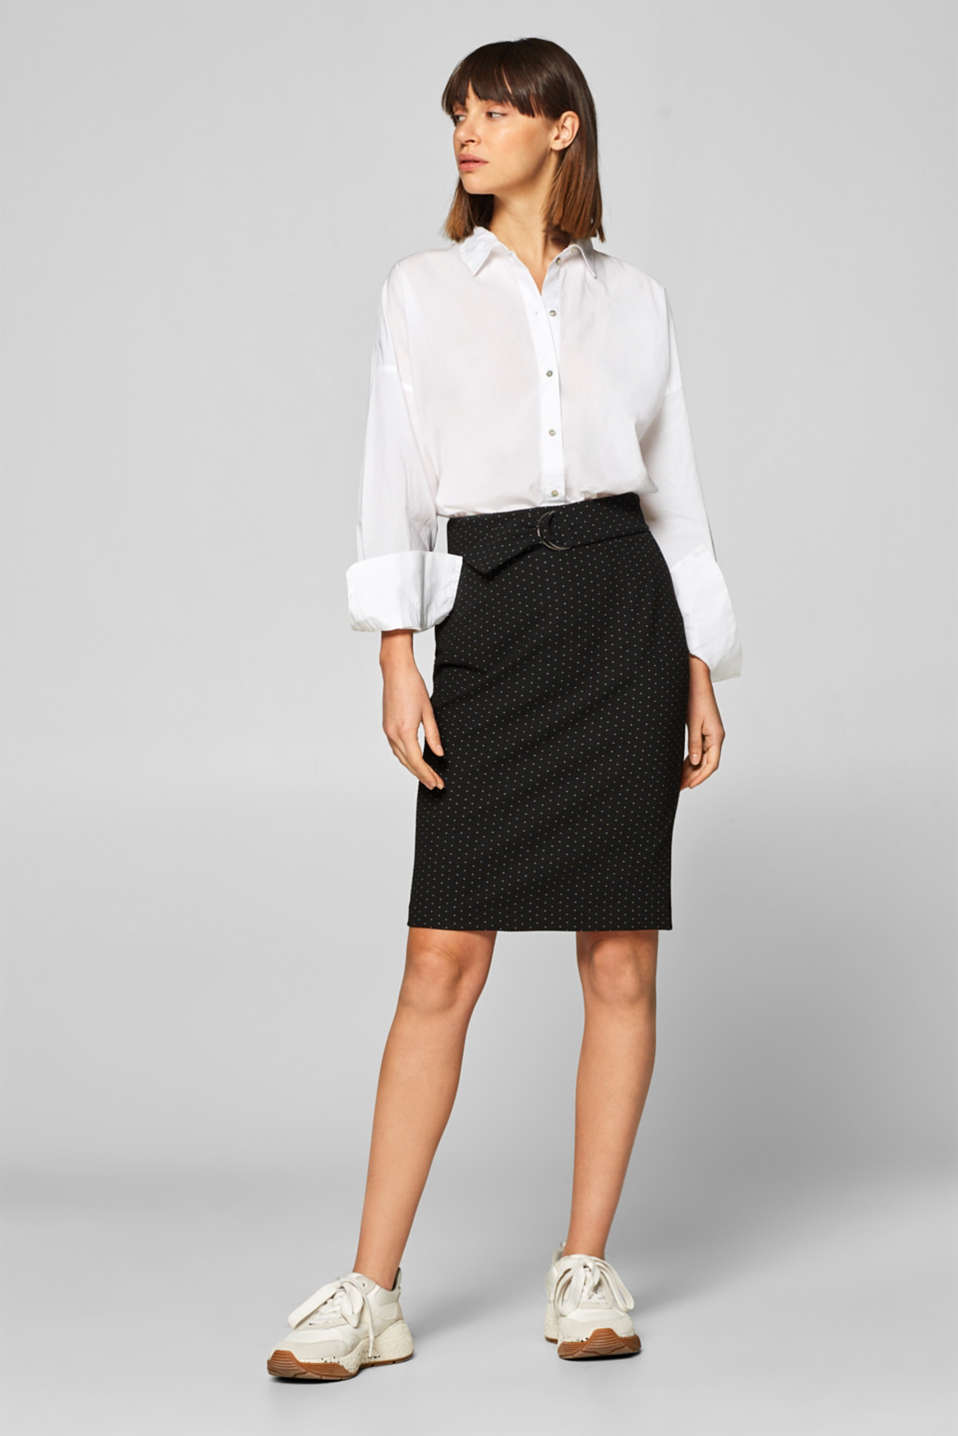 Esprit - Textured stretch jersey skirt with polka dots